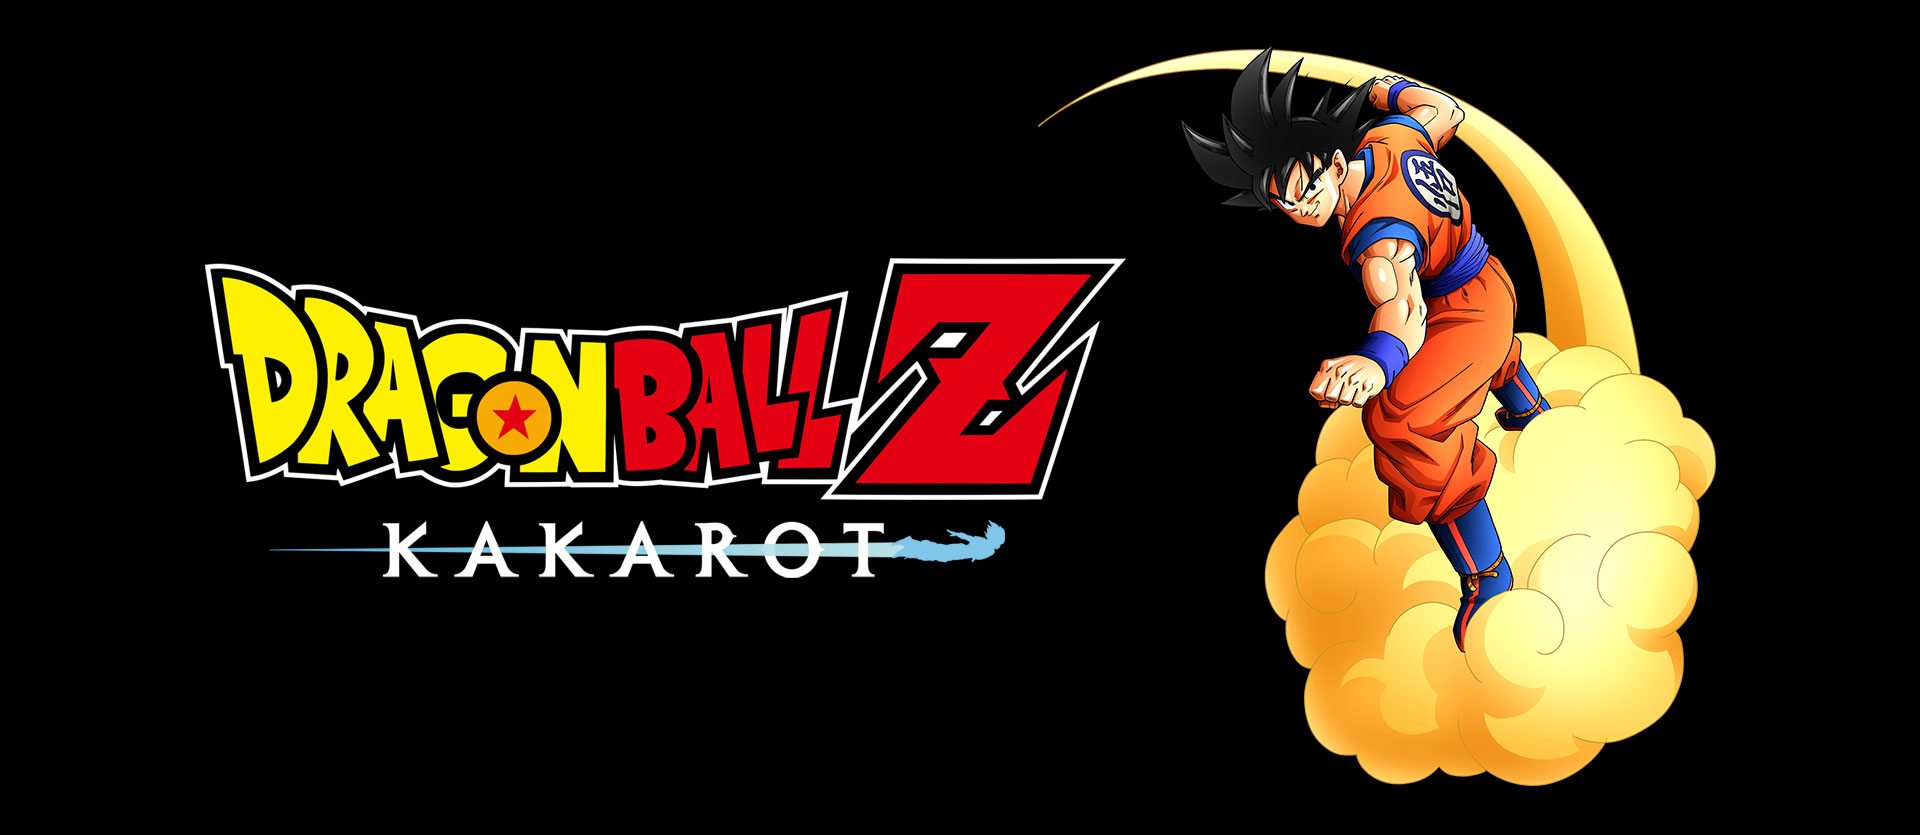 Dragon Ball Z: Kakarot logo with Goku on a cloud